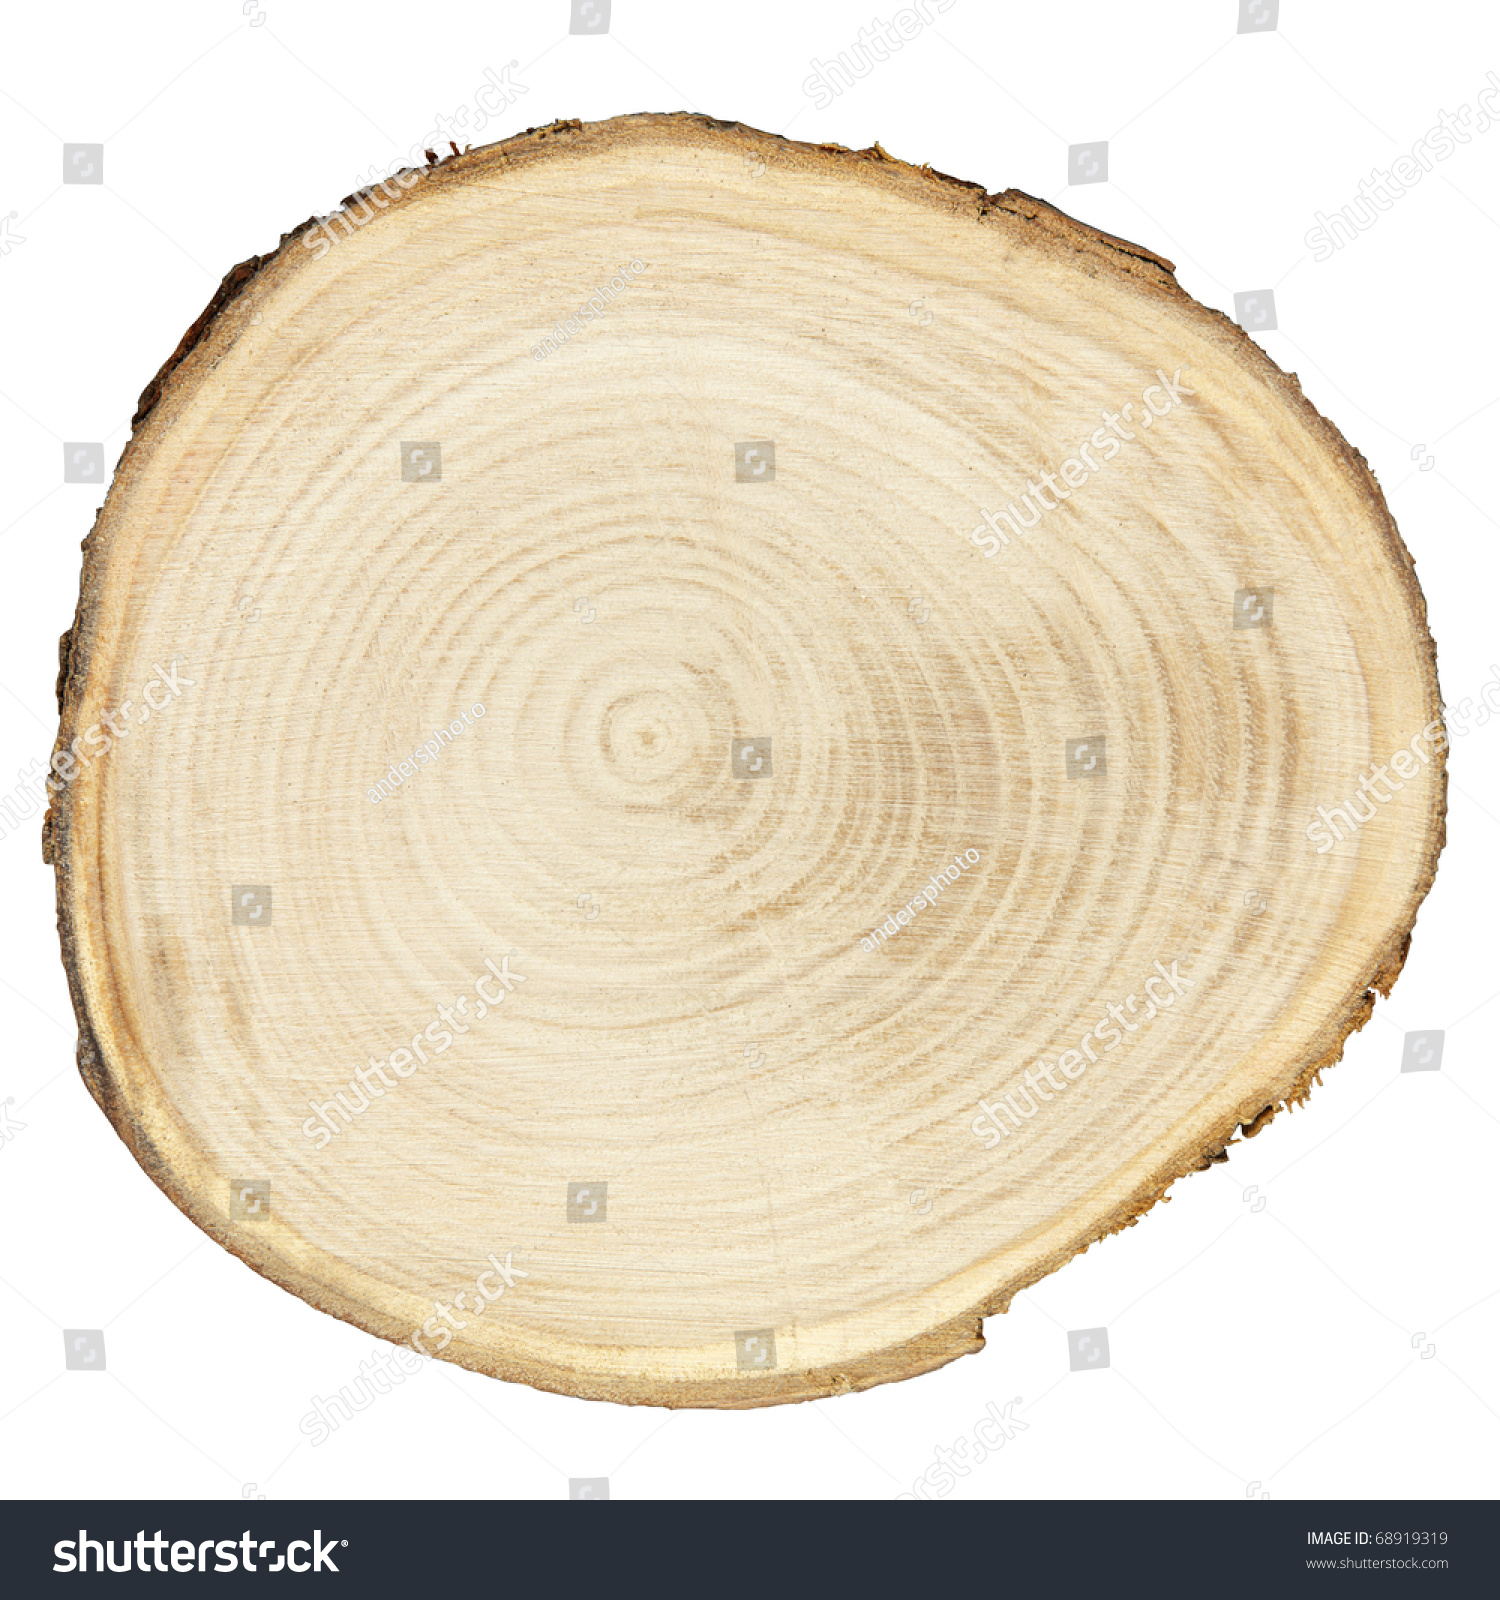 Cross Section Tree Trunk Isolated On Stock Photo 68919319 ...